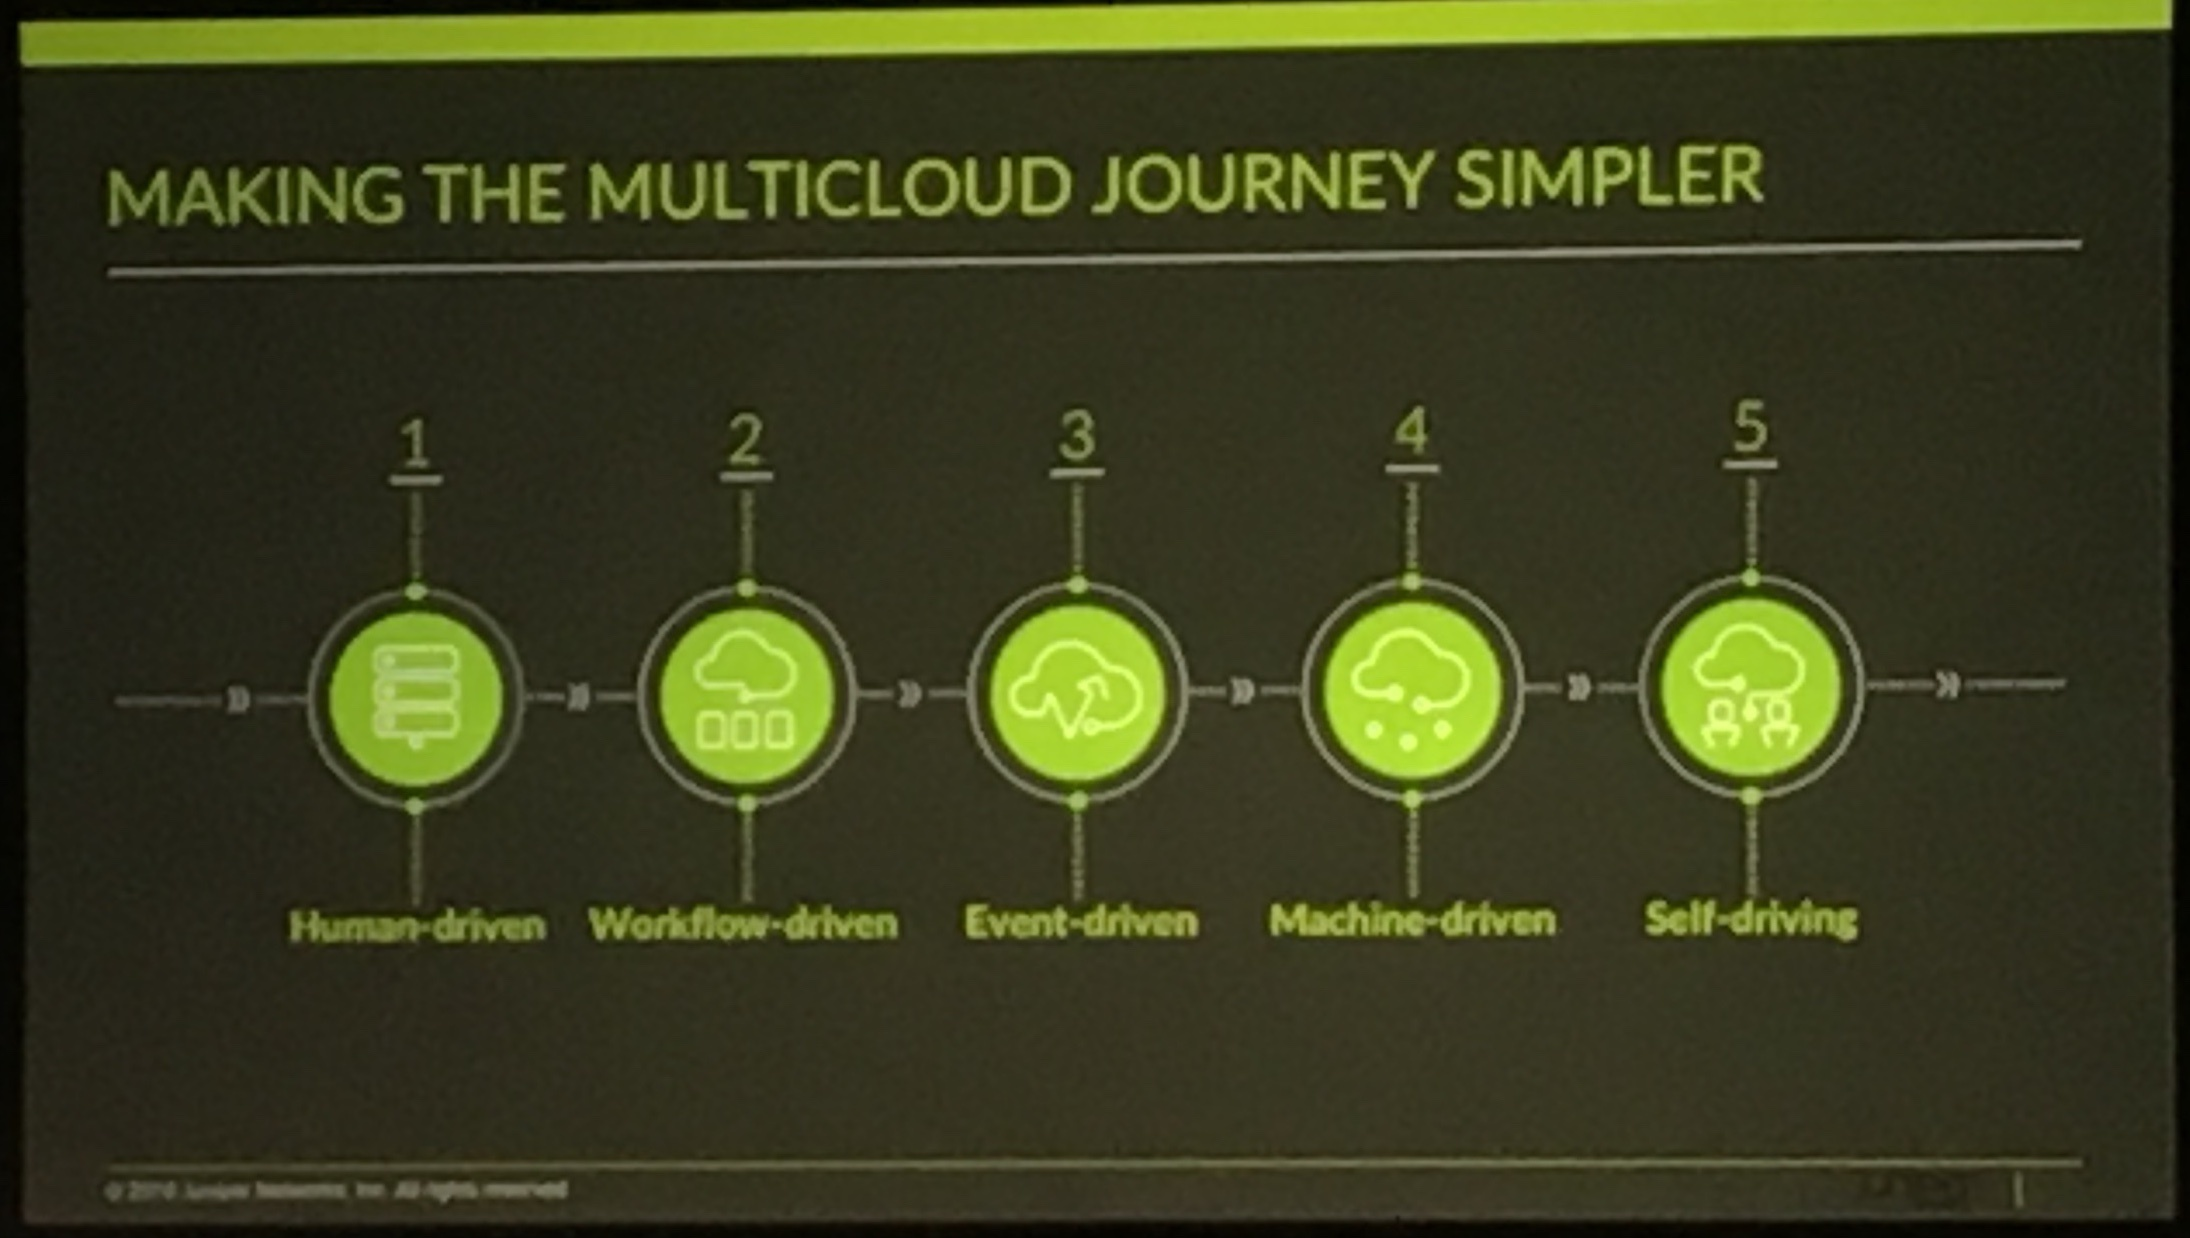 Juniper is Engineering Simplicity for the Multi-cloud Journey